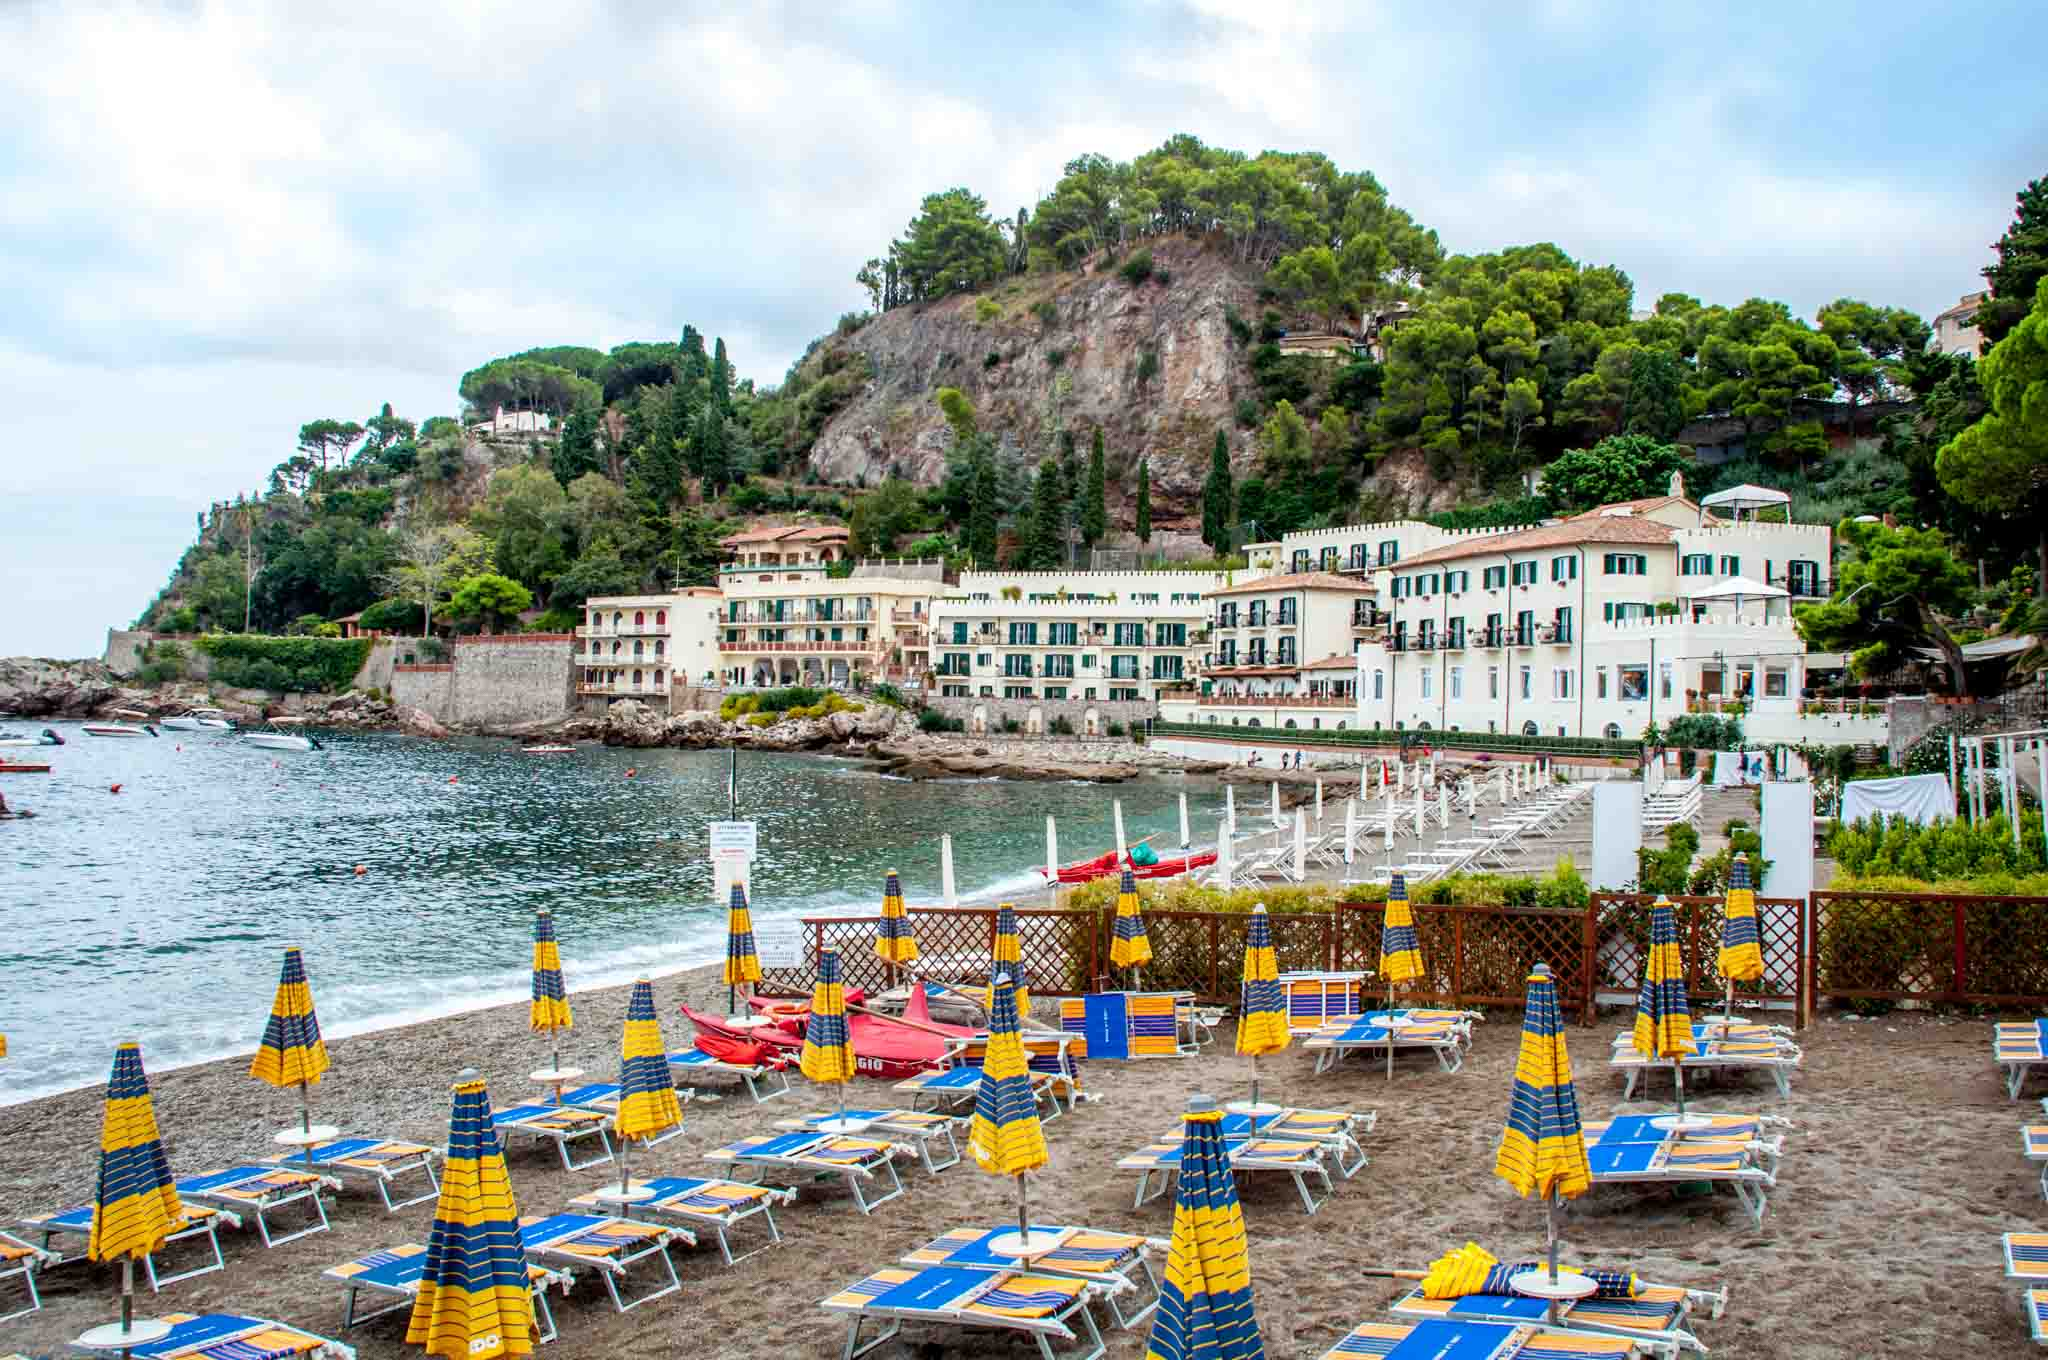 The Cefalu beaches are some of the most beautiful places in Sicily to visit